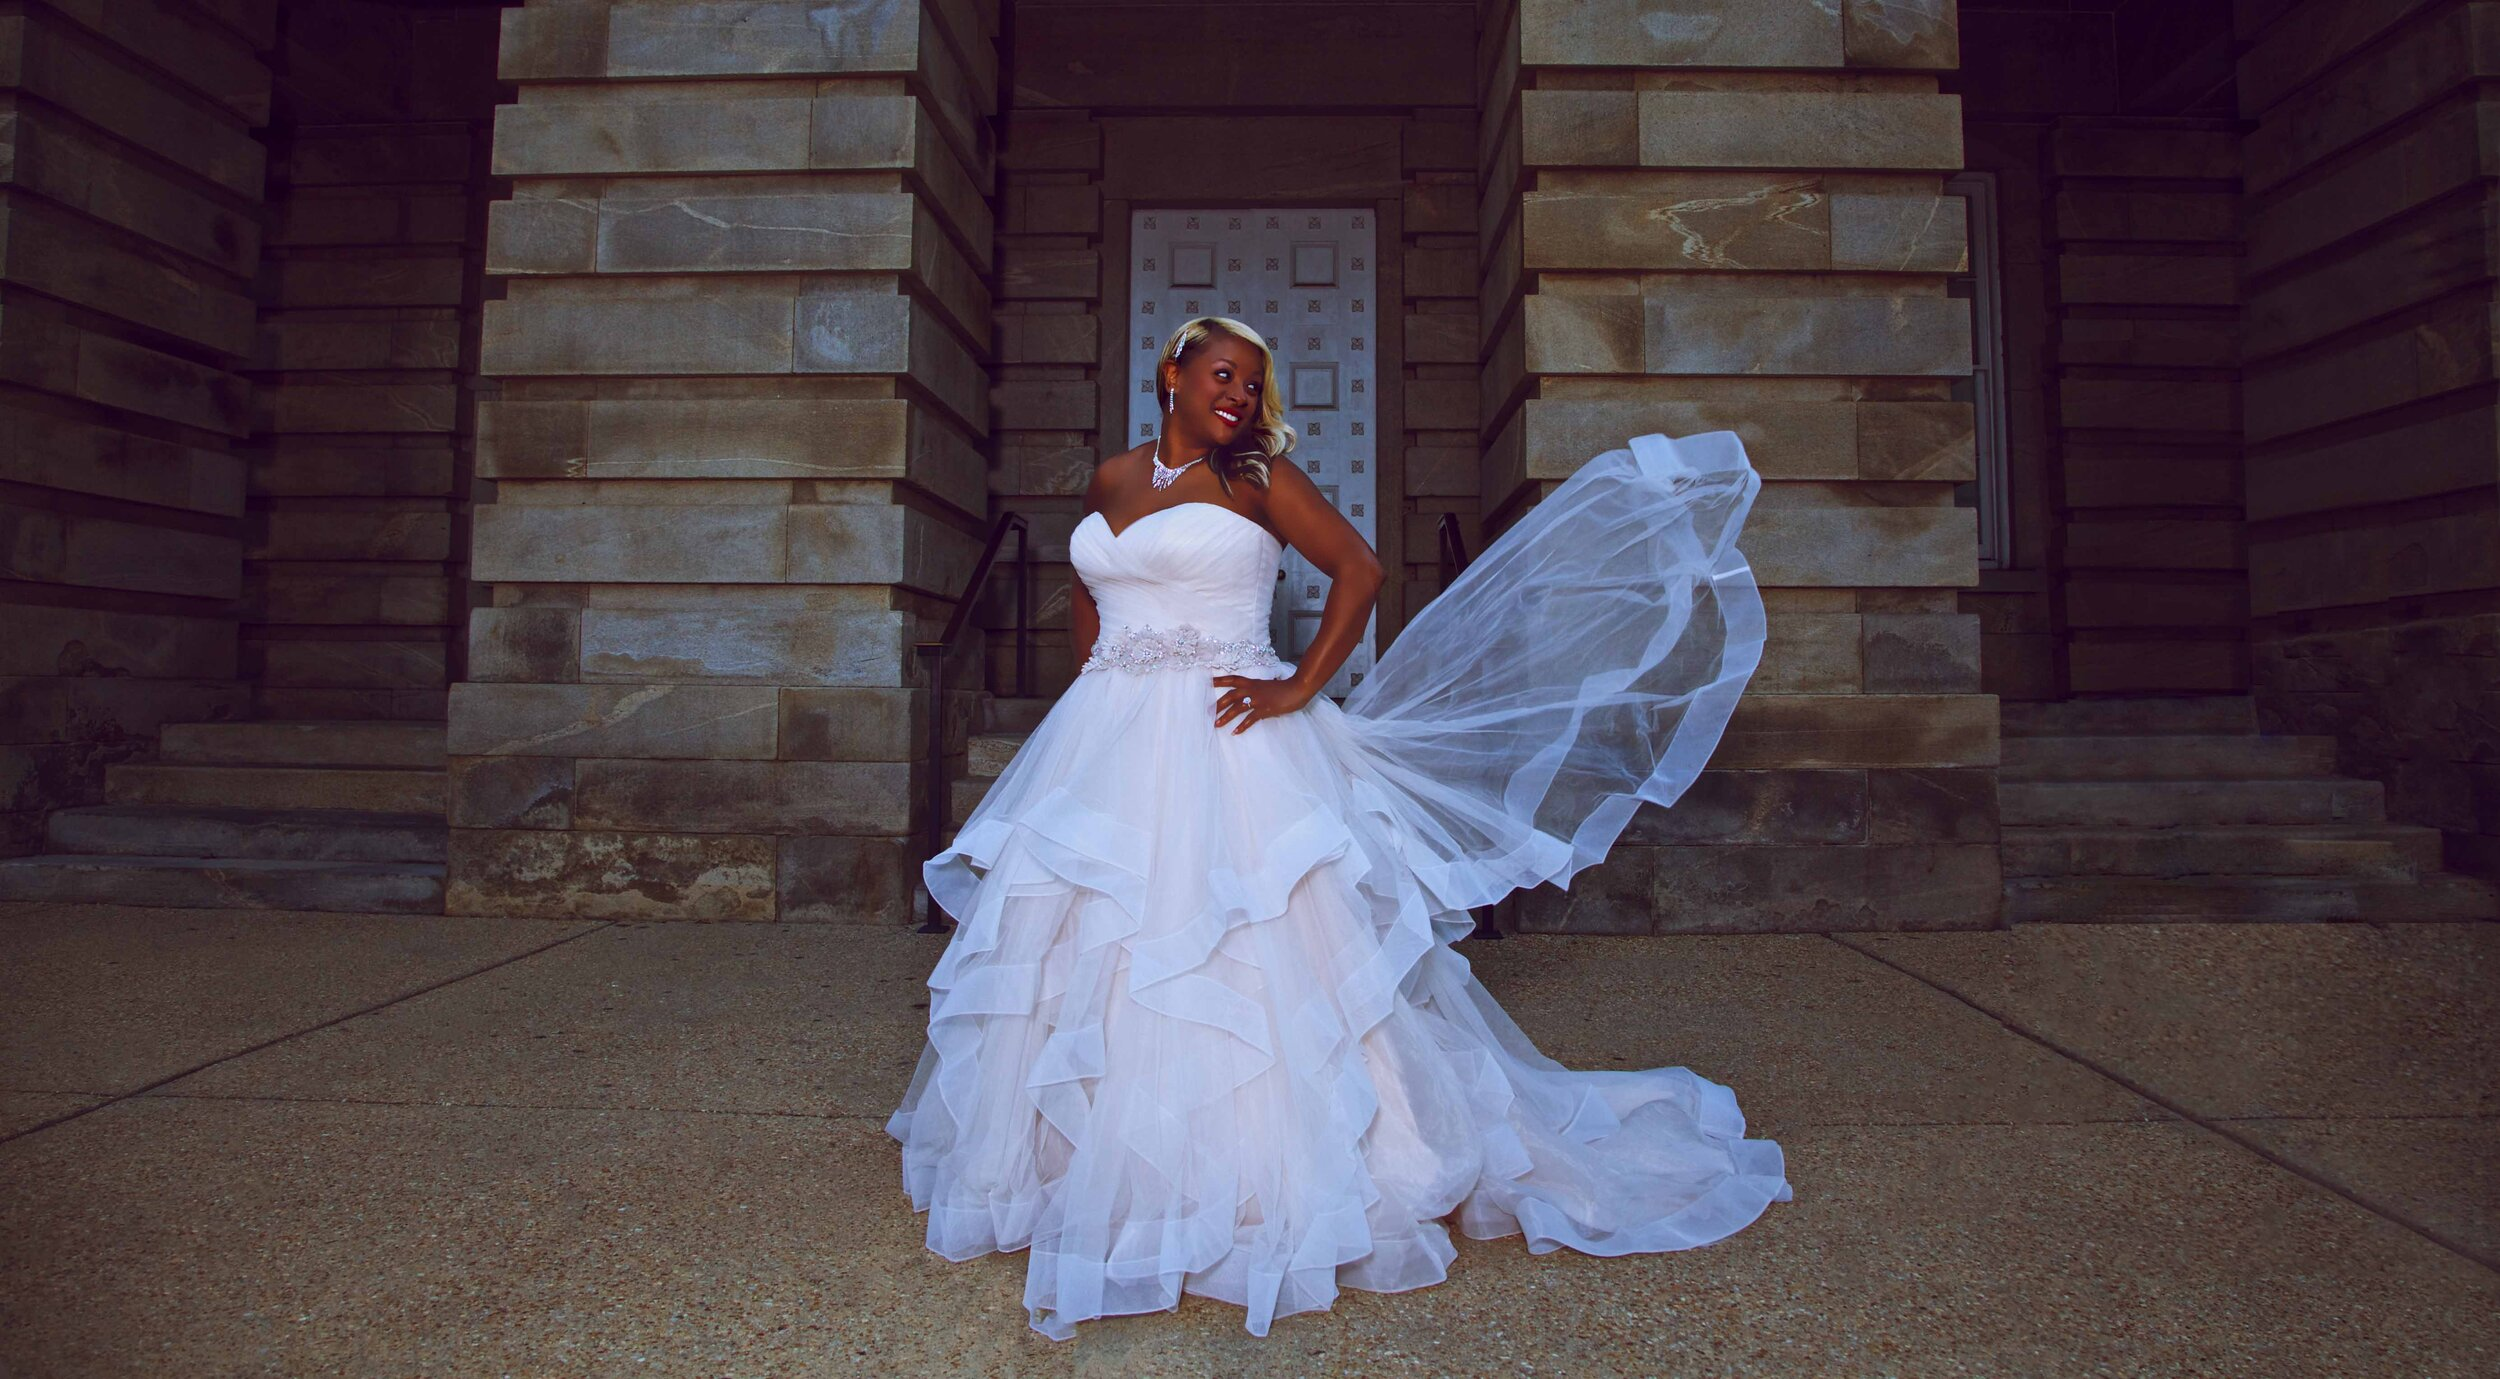 2019.9.20 Crystal Riley Bridal Shoot by StanChambersJr Photography 17 small.jpg